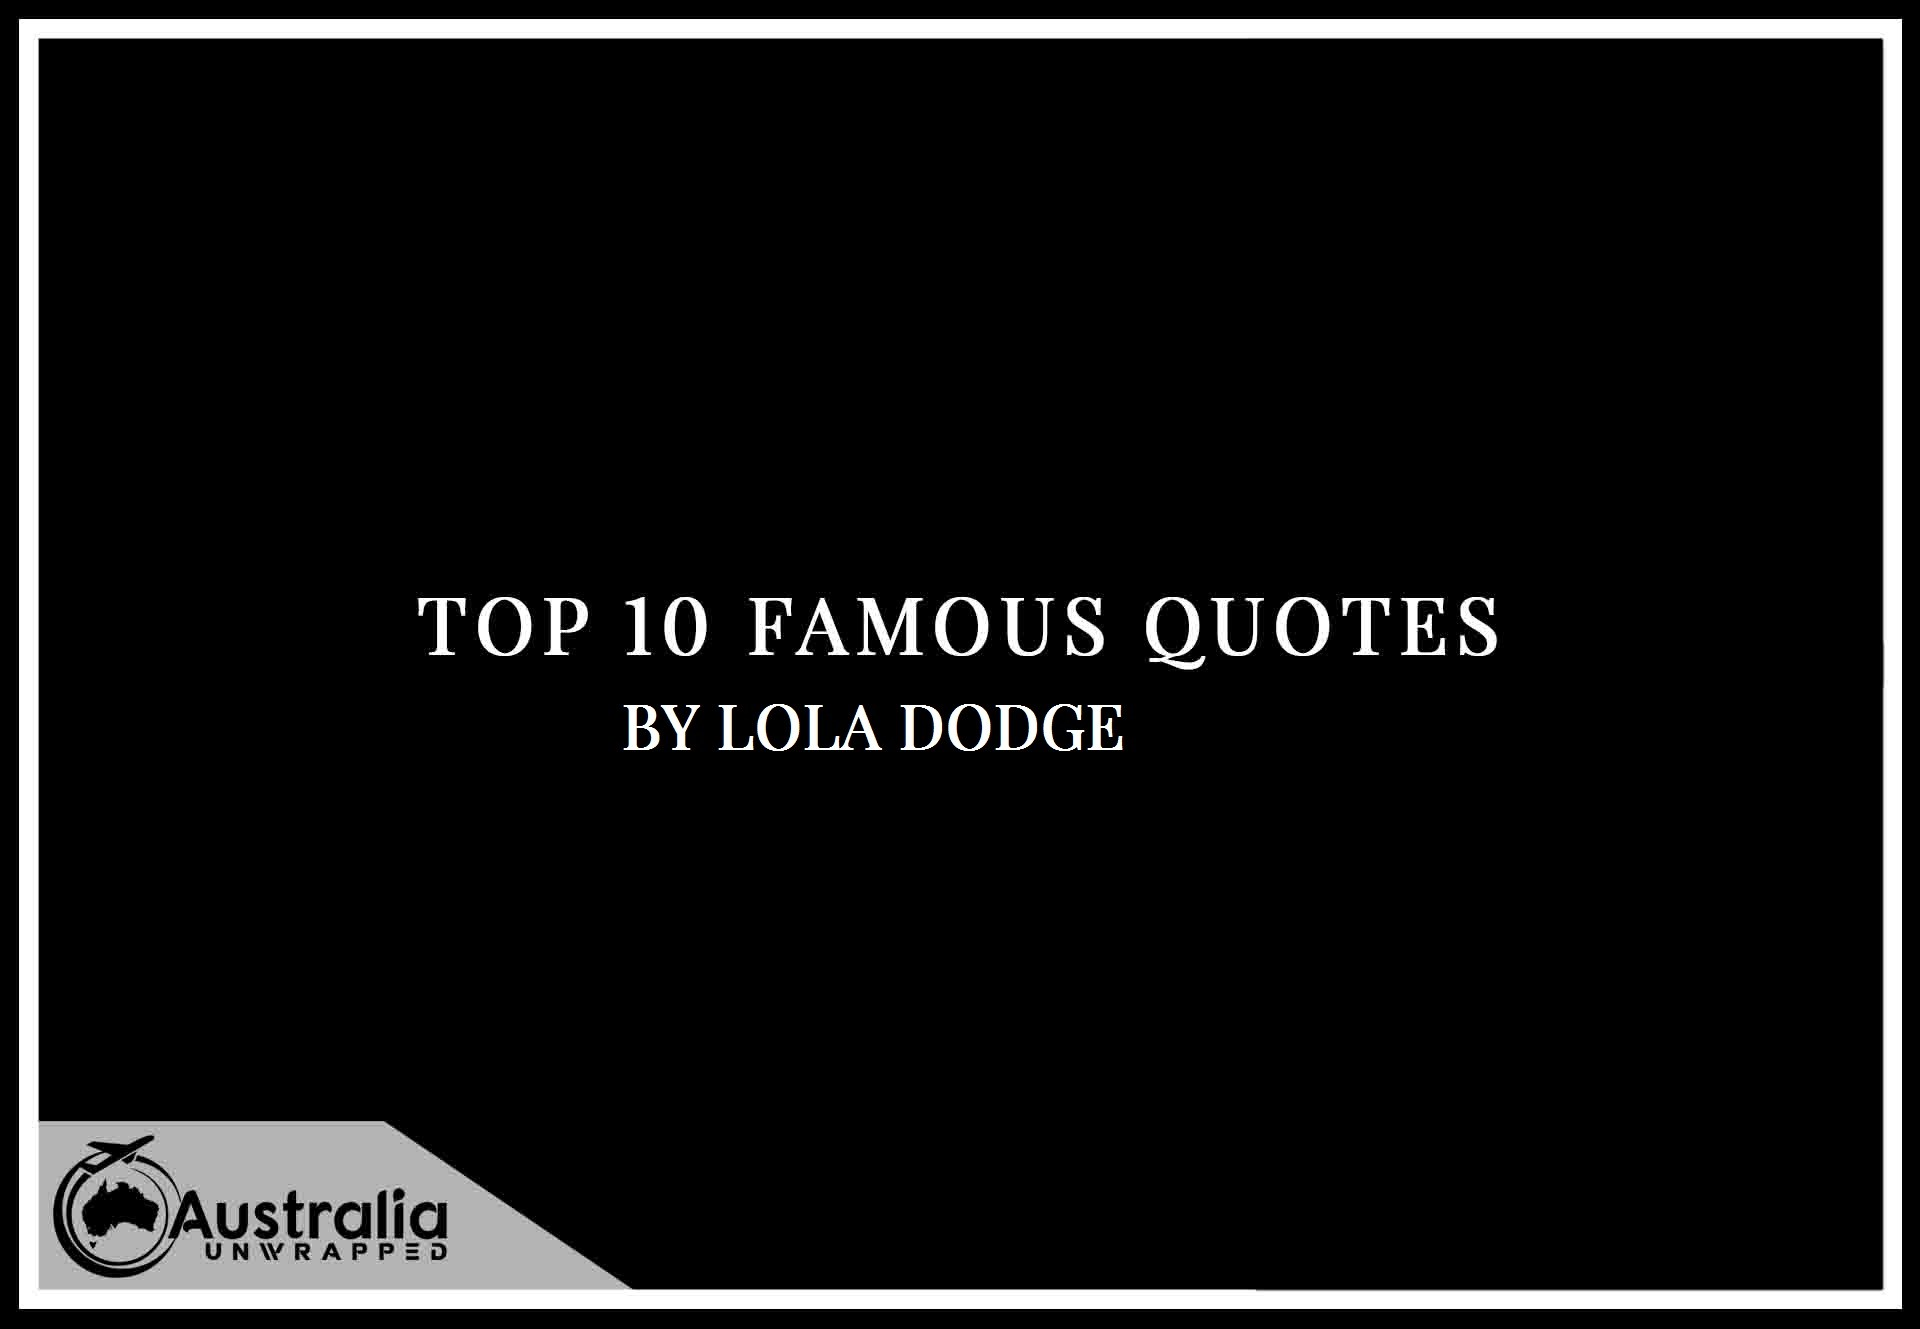 Lola Dodge's Top 10 Popular and Famous Quotes